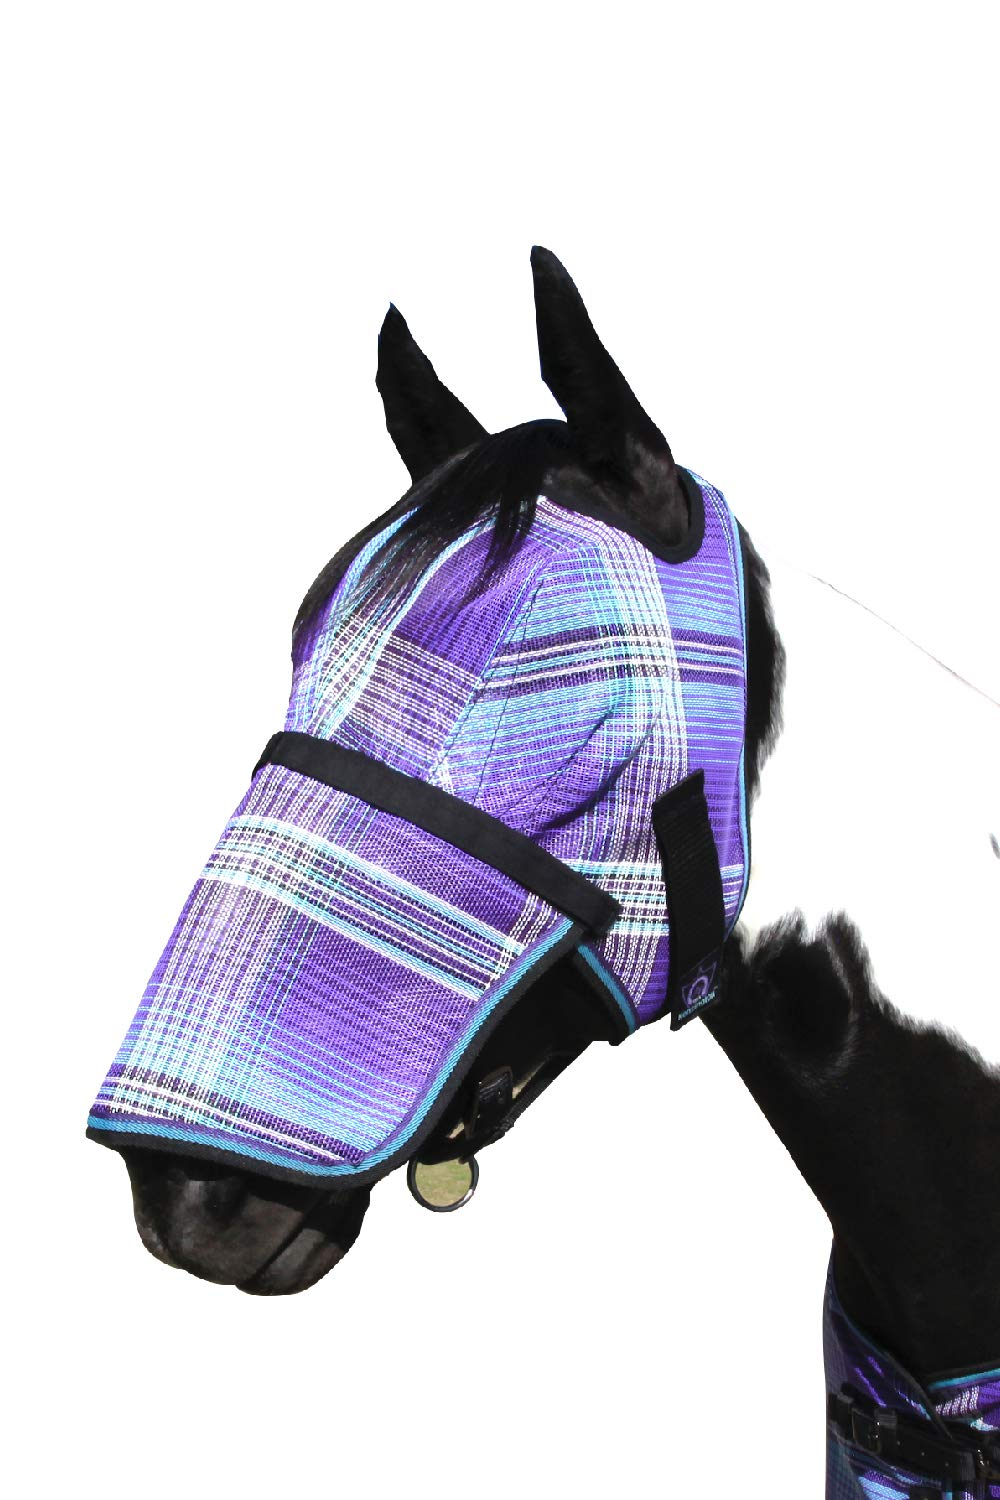 Kensington Signature Removable Nose Fly Mask - Protects Horses Face Nose from Insects, UV Rays, While Allowing Full Visibility - Ears Forelock Able to Come Through The Mask (M, Lavender Mint) by Kensington Protective Products